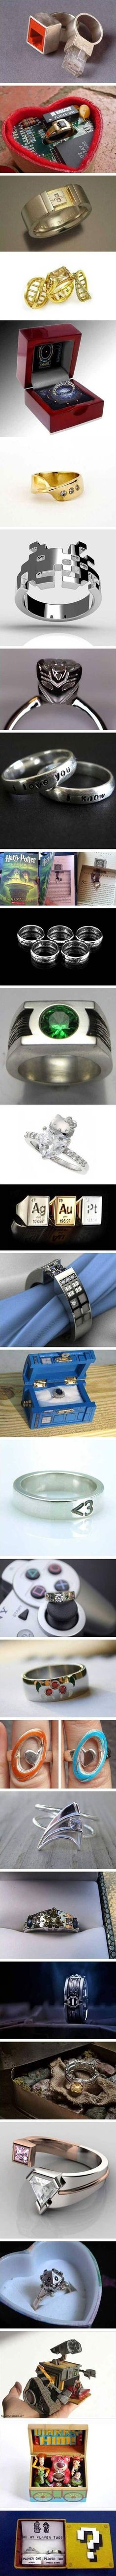 Engagement plans: Doing it right. I would have the Zelda one presented in a case shaped like a triforce